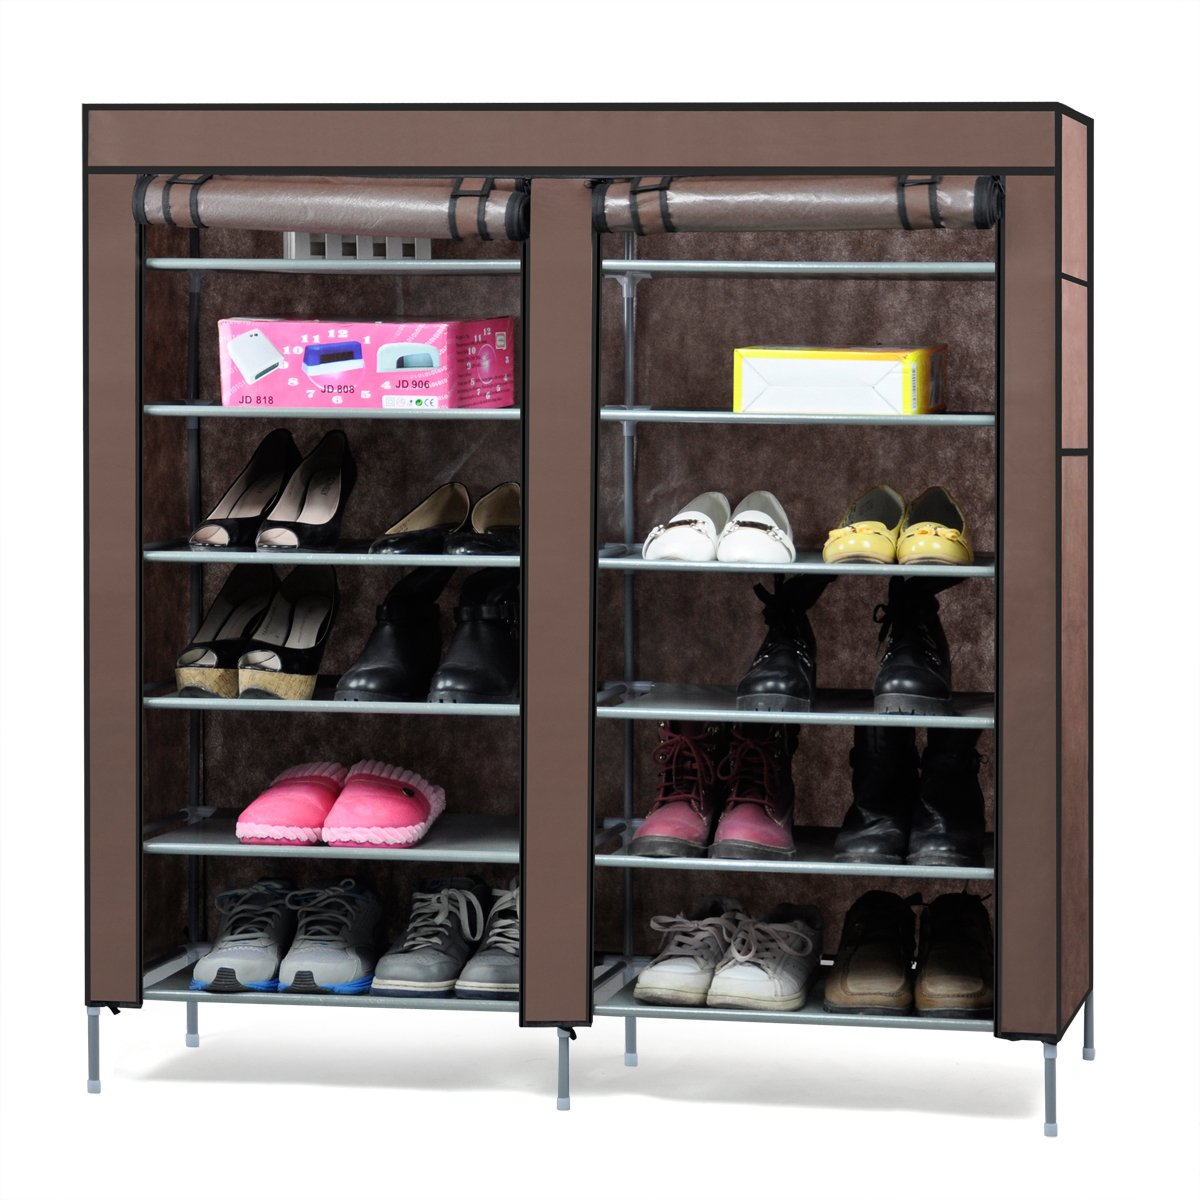 Popamazing 6-Tier 2 Rows Doors Shoe Cabinet Rack Large Shoes Stand Storage Organizer Furniture (Coffee)